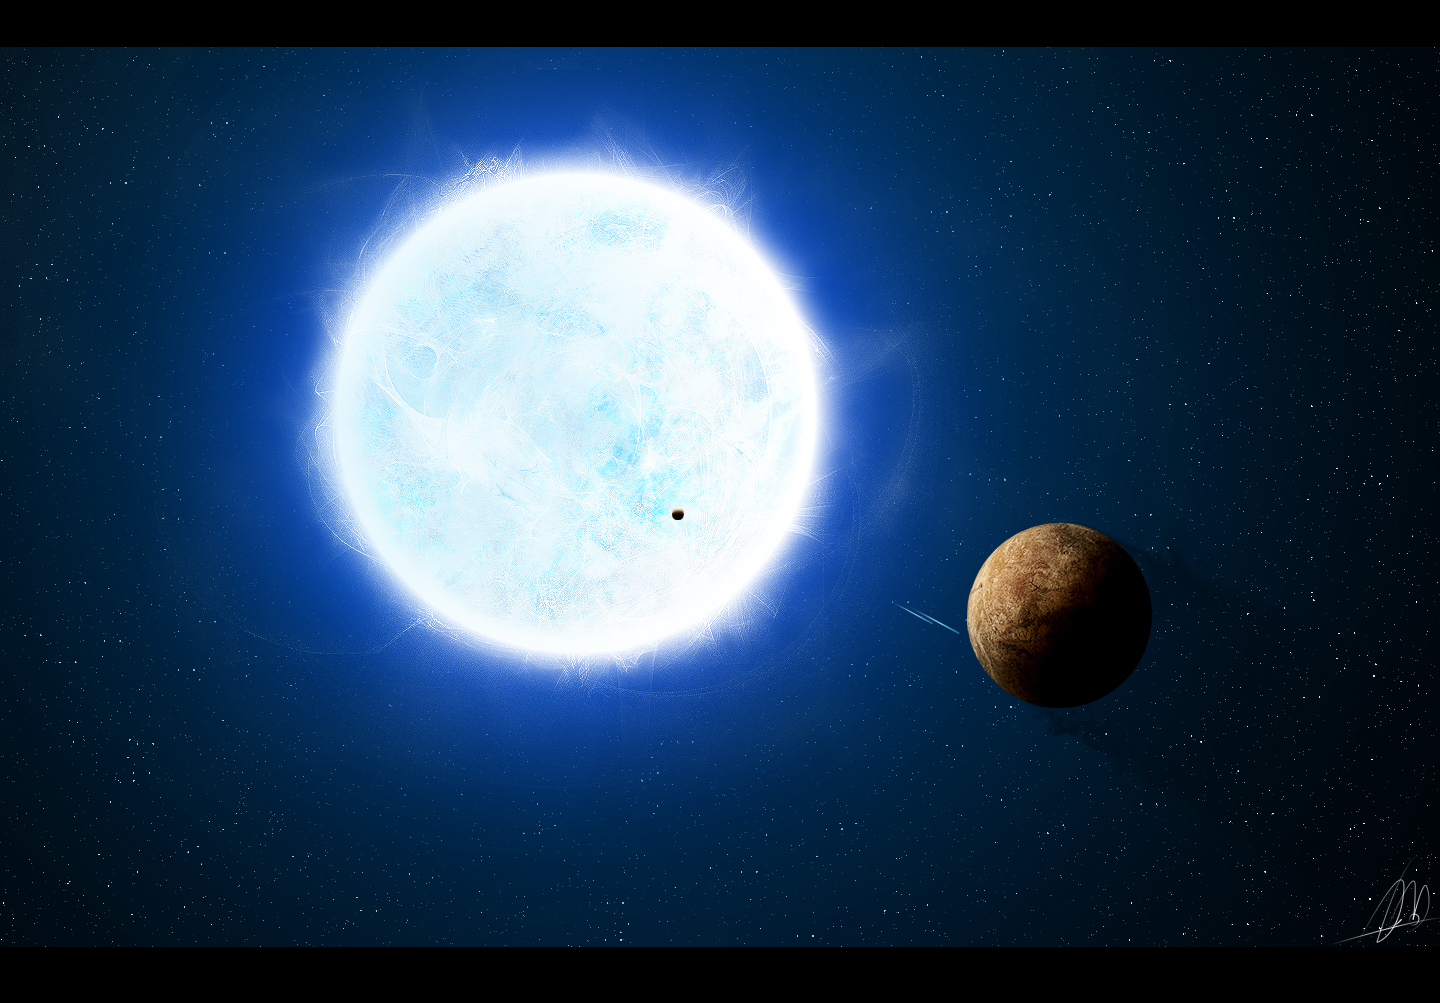 pictures of outer space in the white dwarf - photo #5